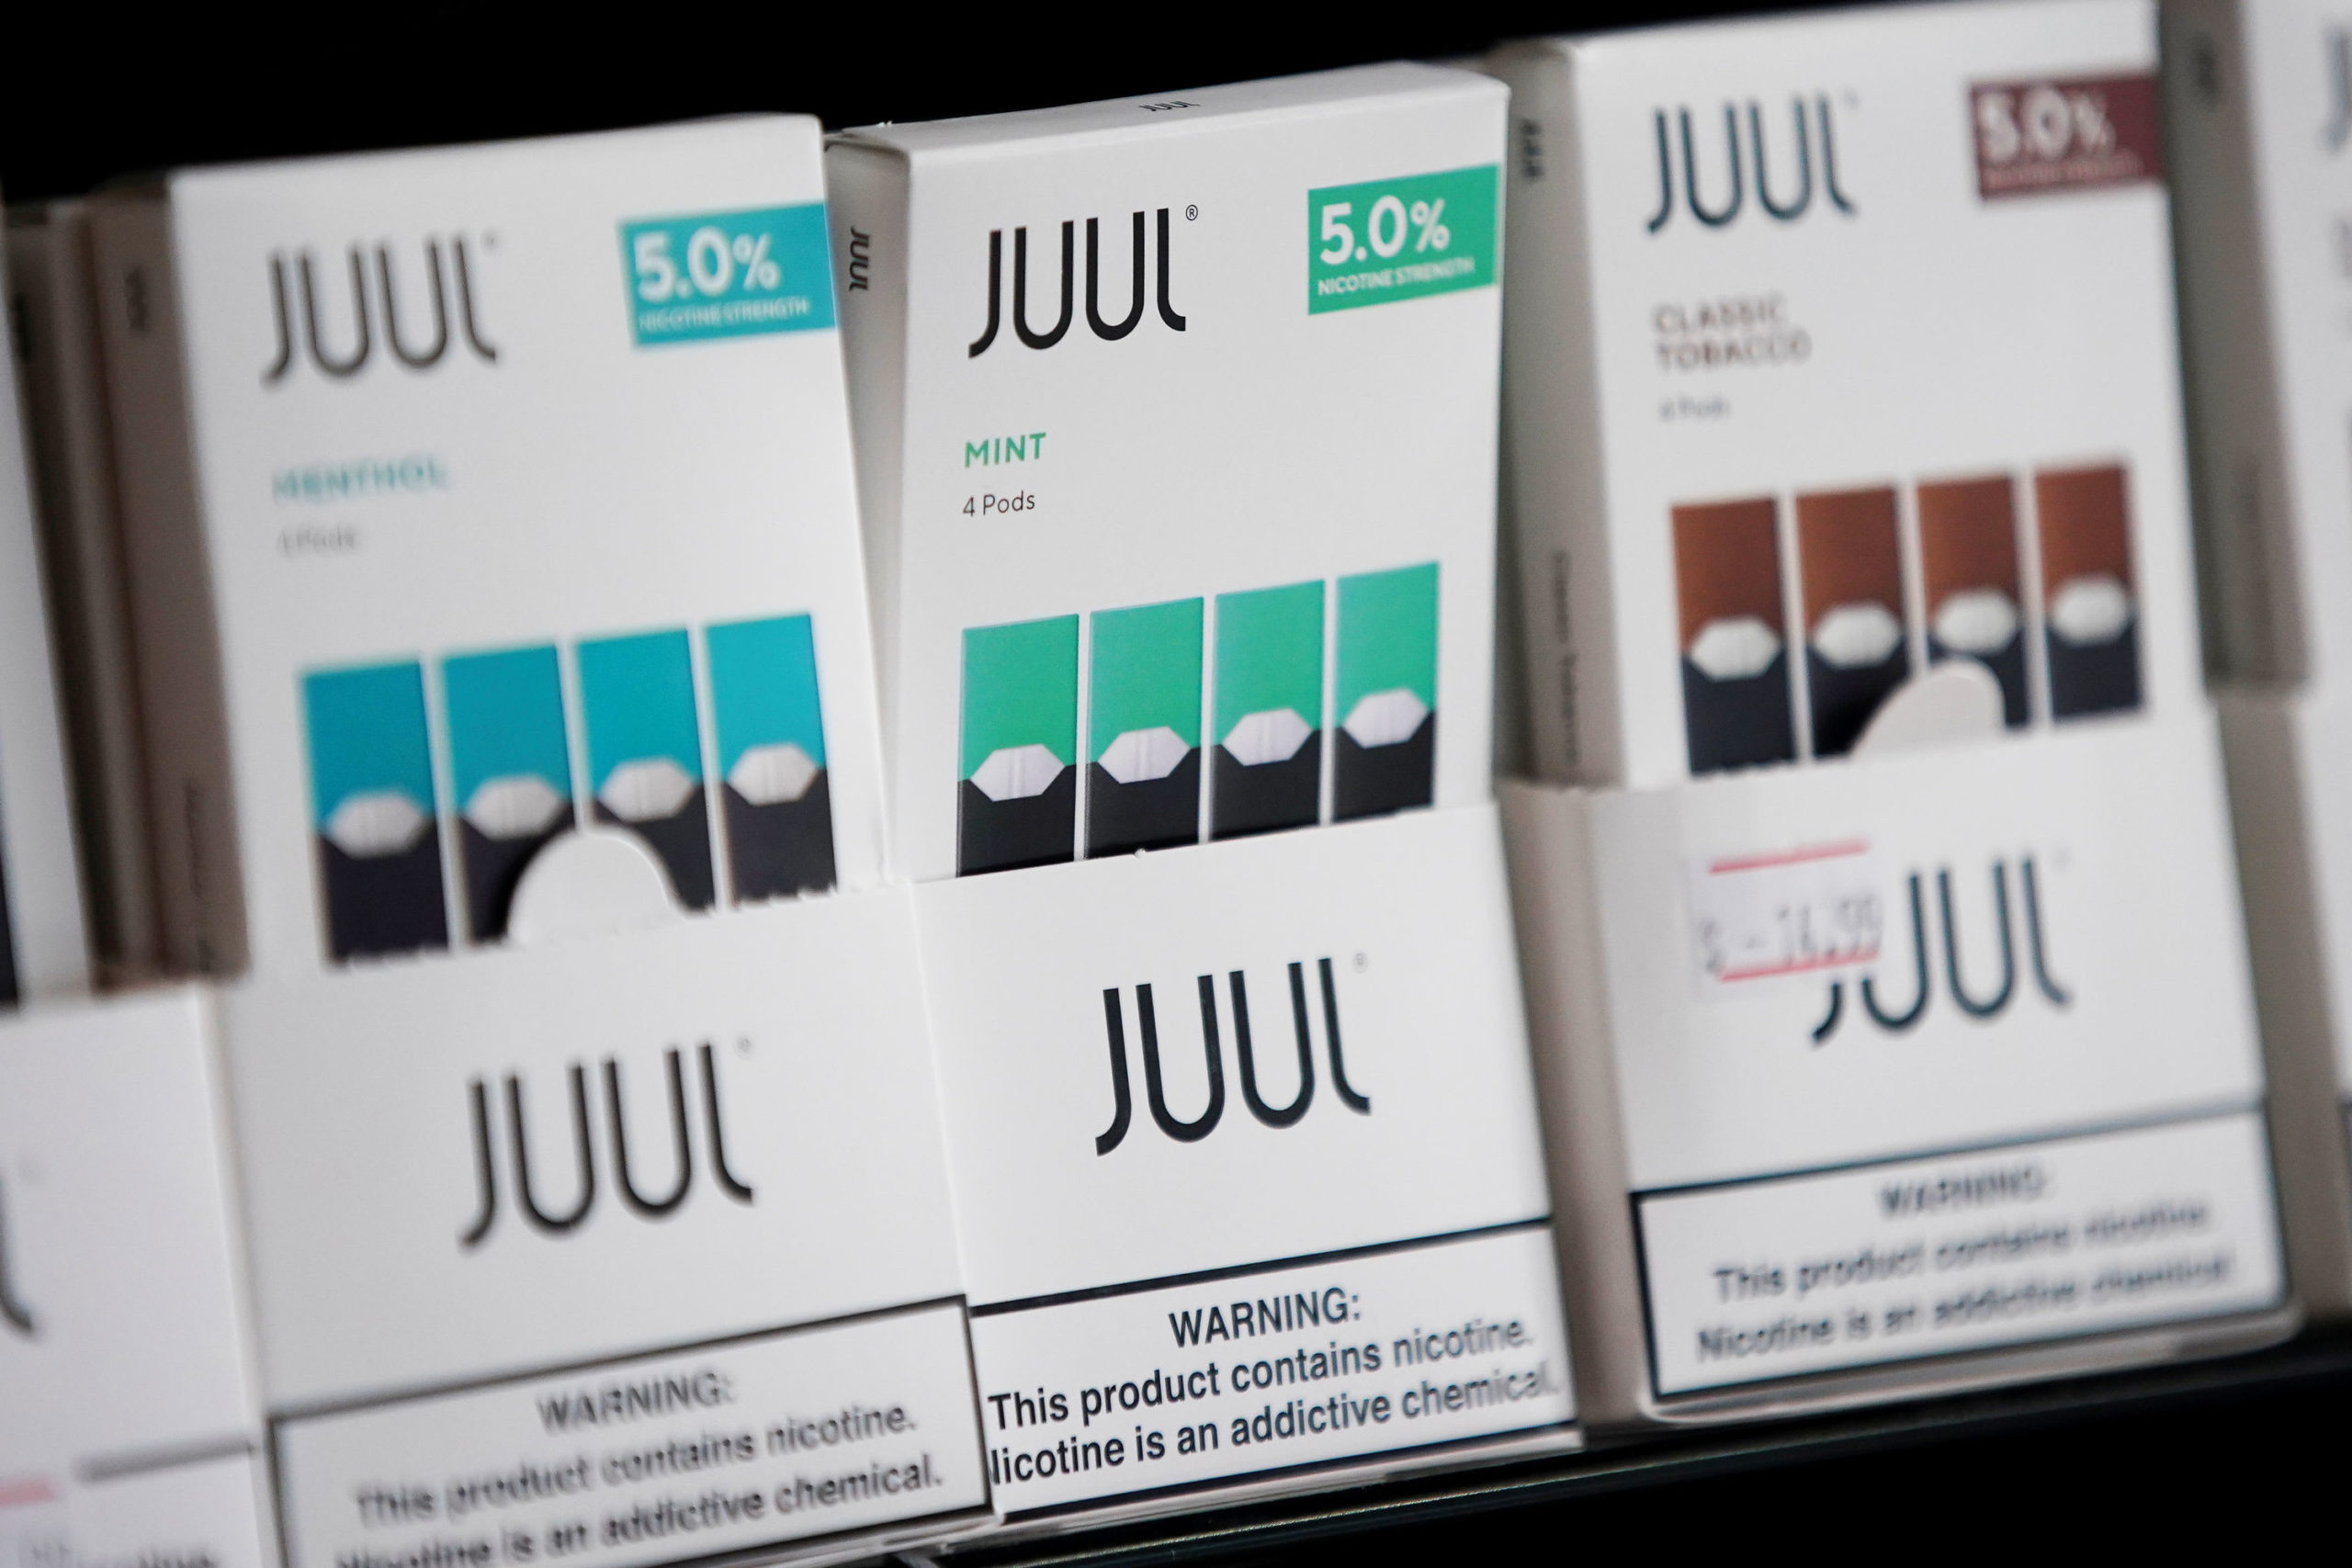 SEC reportedly probing Altria's Juul funding